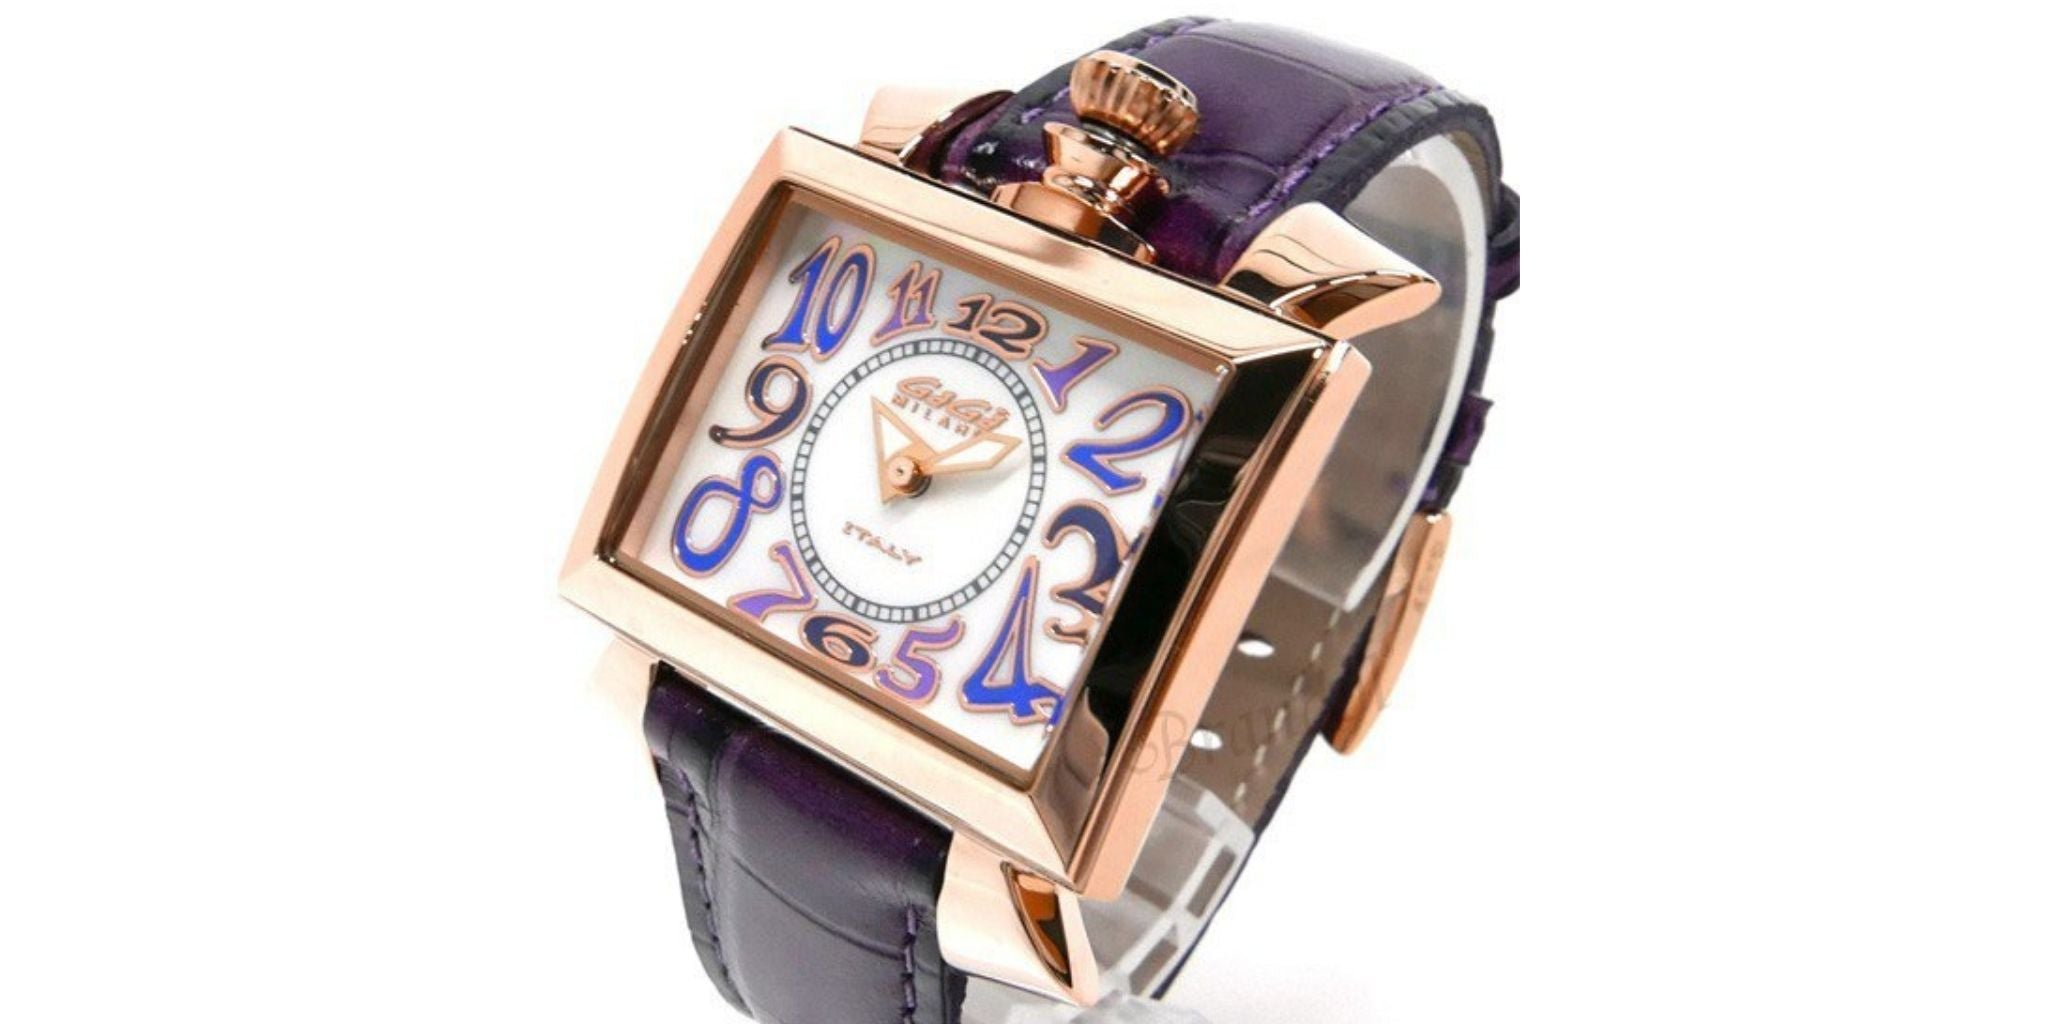 GaGà Milano Napoleone 40MM Lilac, Best Watch Brands for Women, Best Watches For Women, Best Women's Watches, Best Women's Watches 2020, Ladies Watches, Quality Women's Watches,